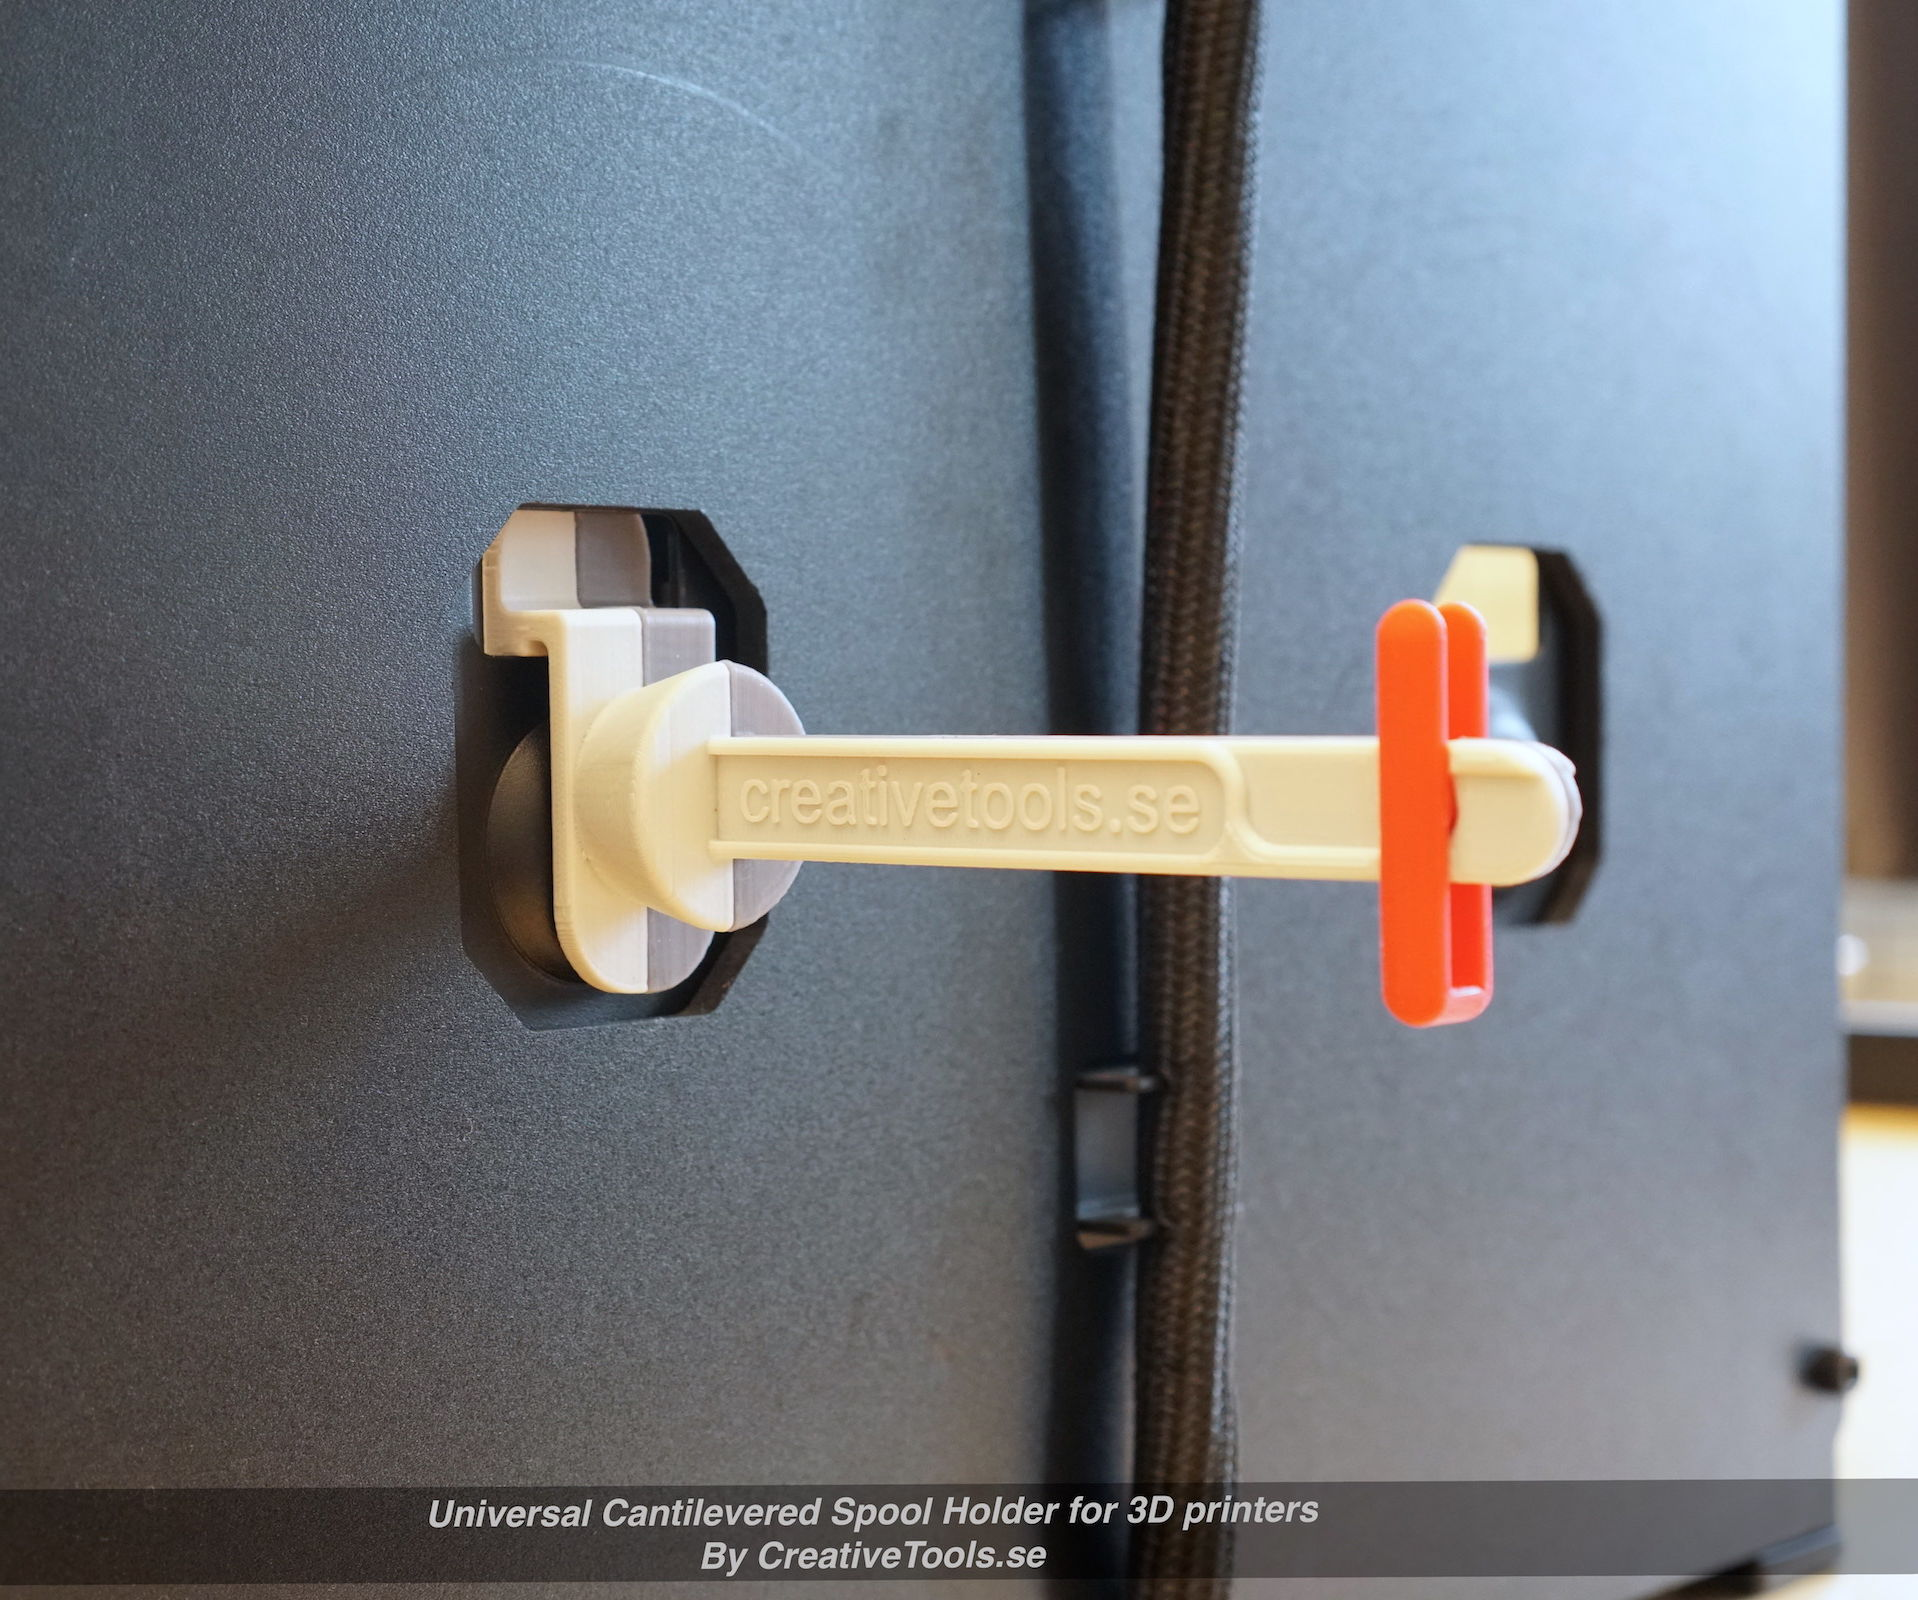 Universal Cantilevered Spool Holder for 3D Printers